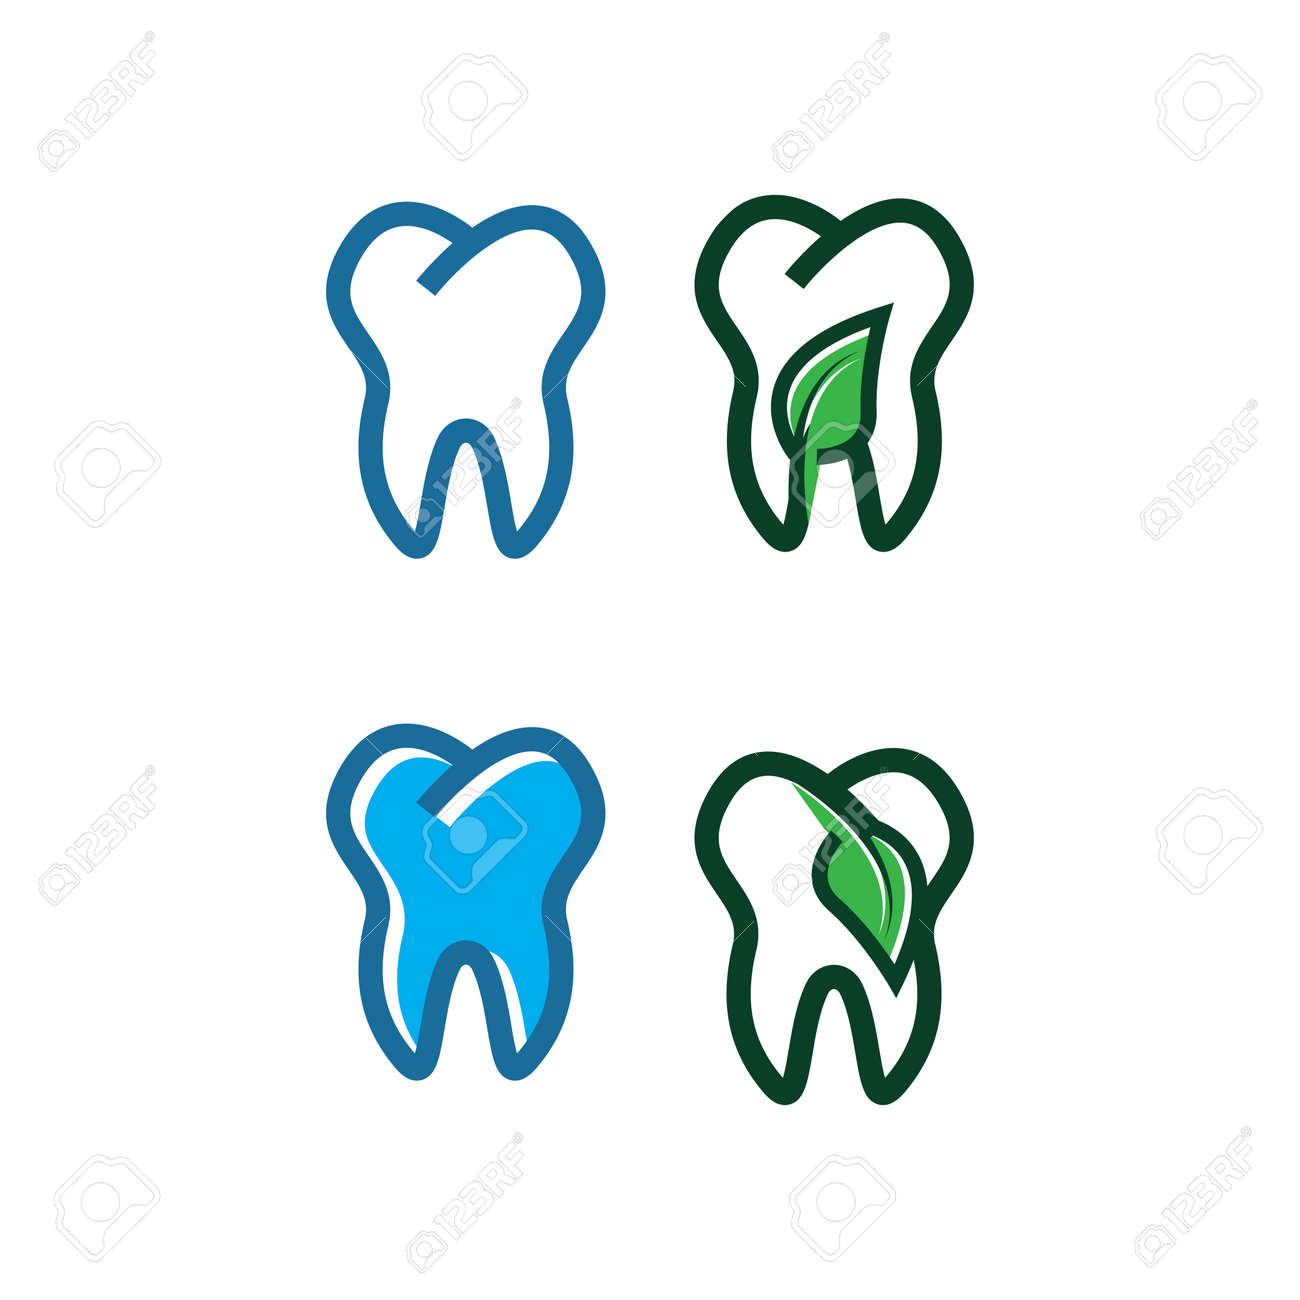 Illustration of tooth logo design template vector royalty free illustration of tooth logo design template vector stock vector 103448430 maxwellsz